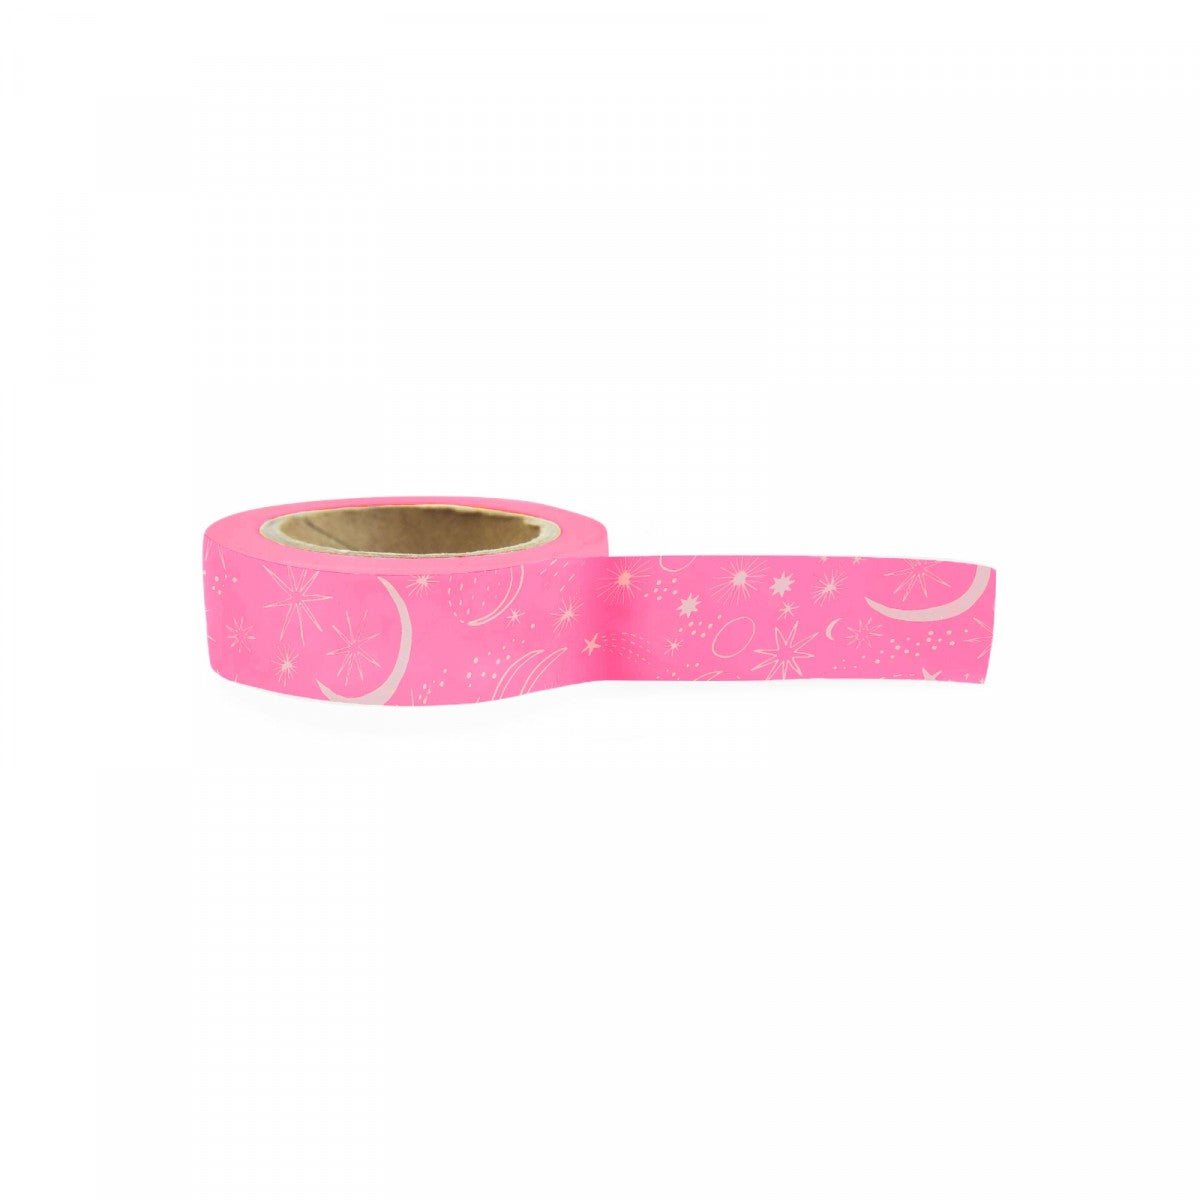 Moonbeams Washi Tape